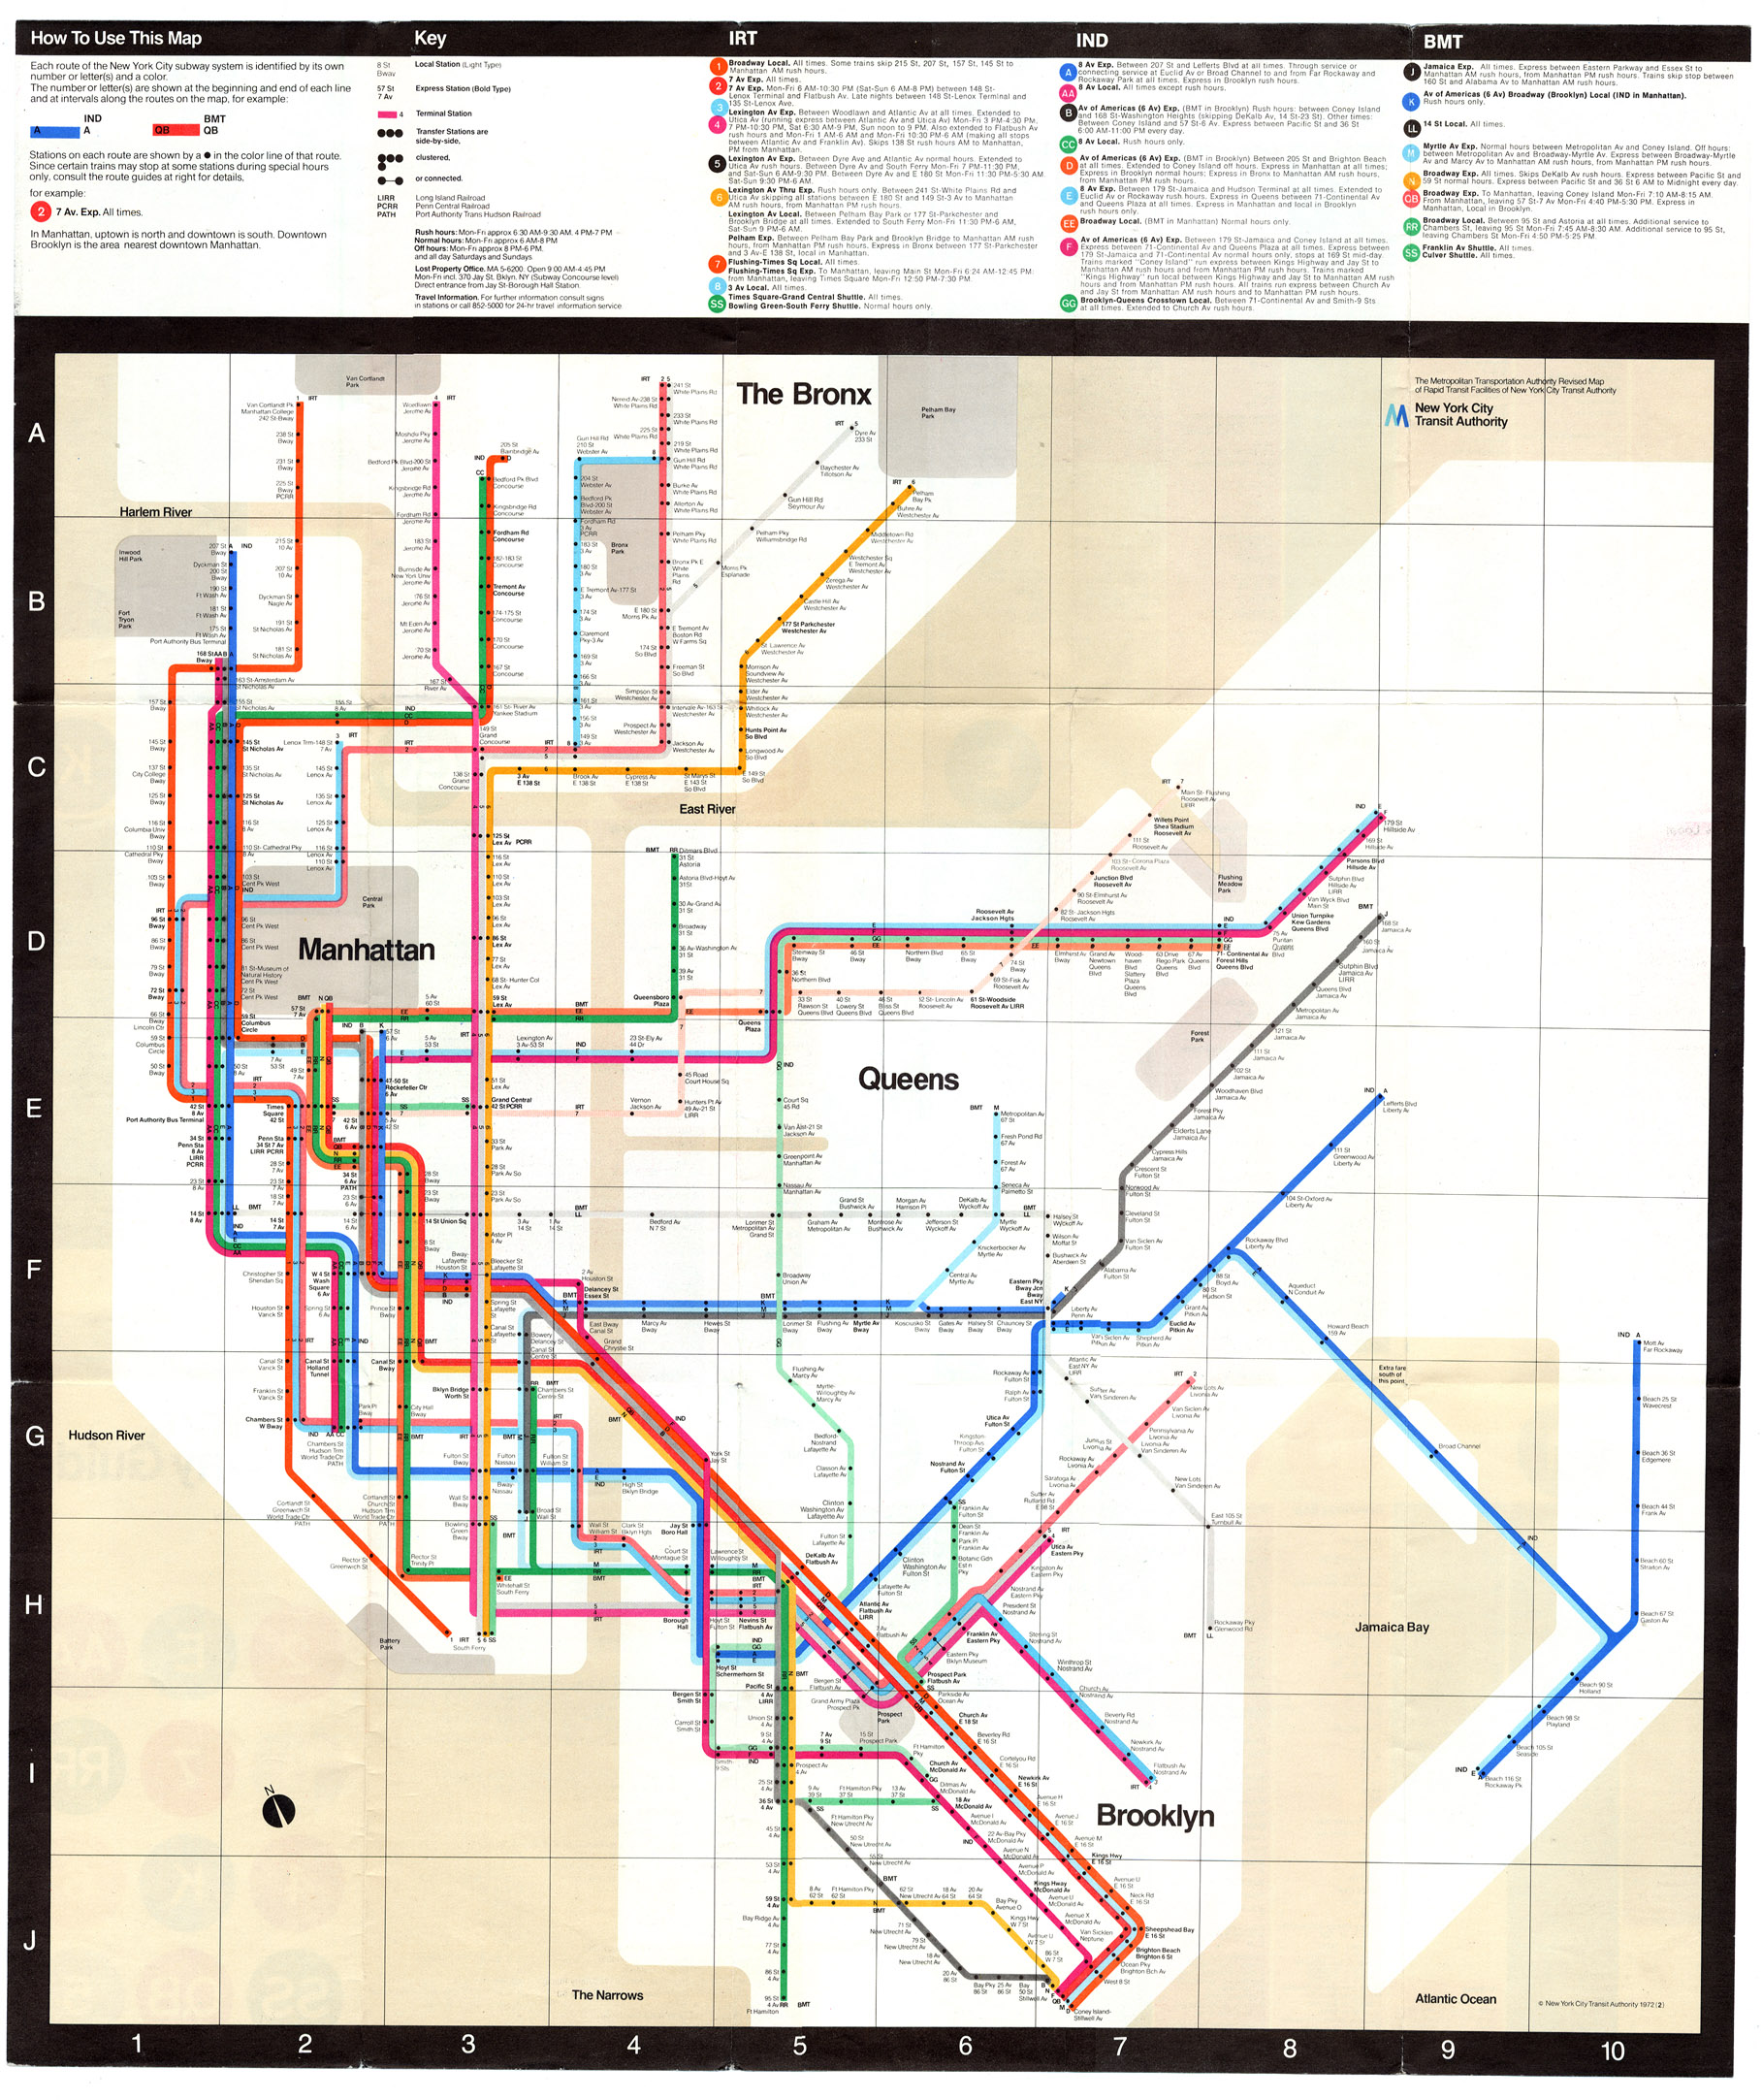 vignellis 1972 subway map image courtesy of nycsubwayorg